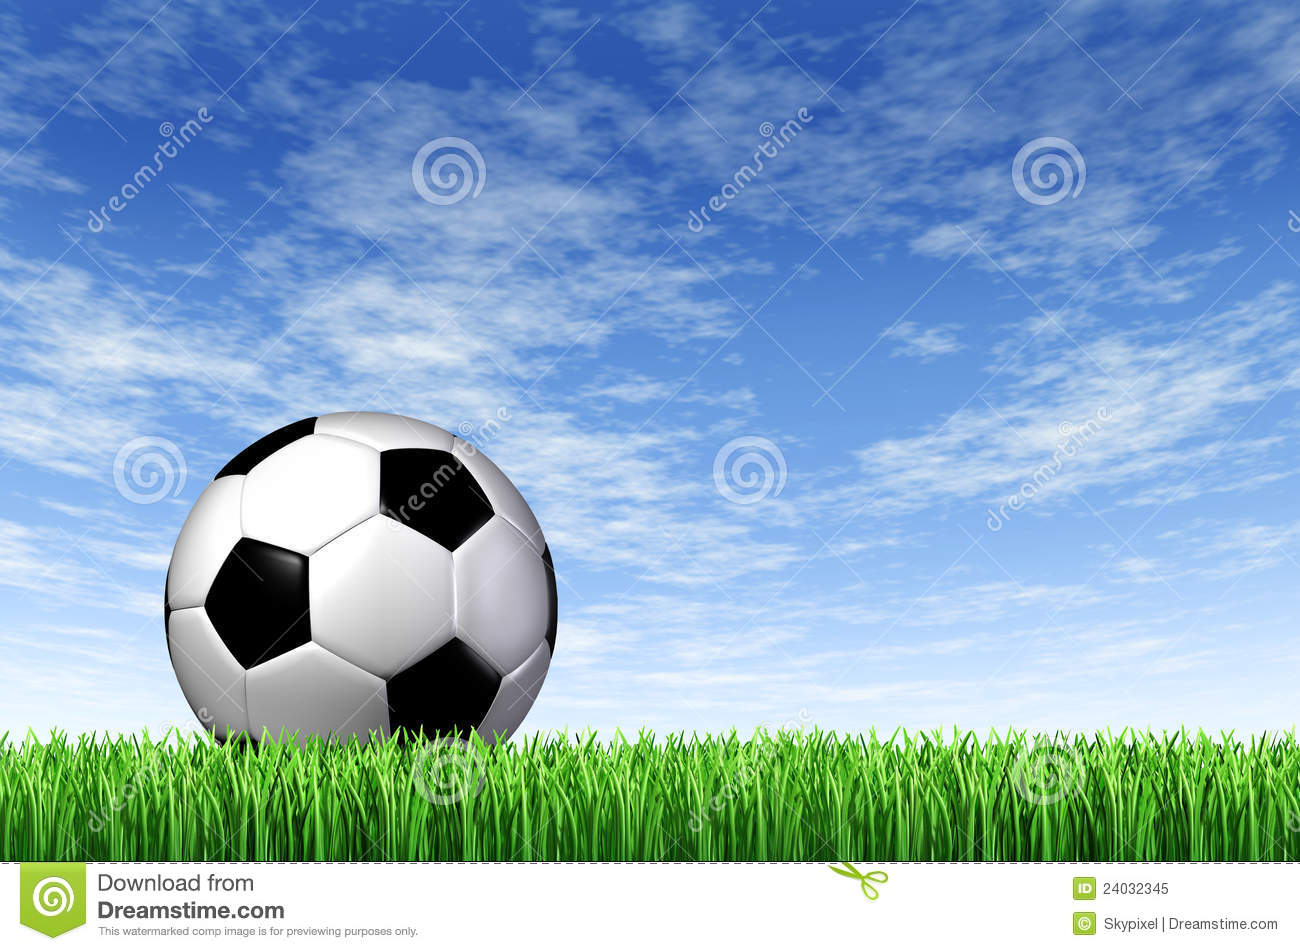 Soccer Football On Green Field With Blue Sky Background: Soccer Ball And Grass Field Background Royalty Free Stock